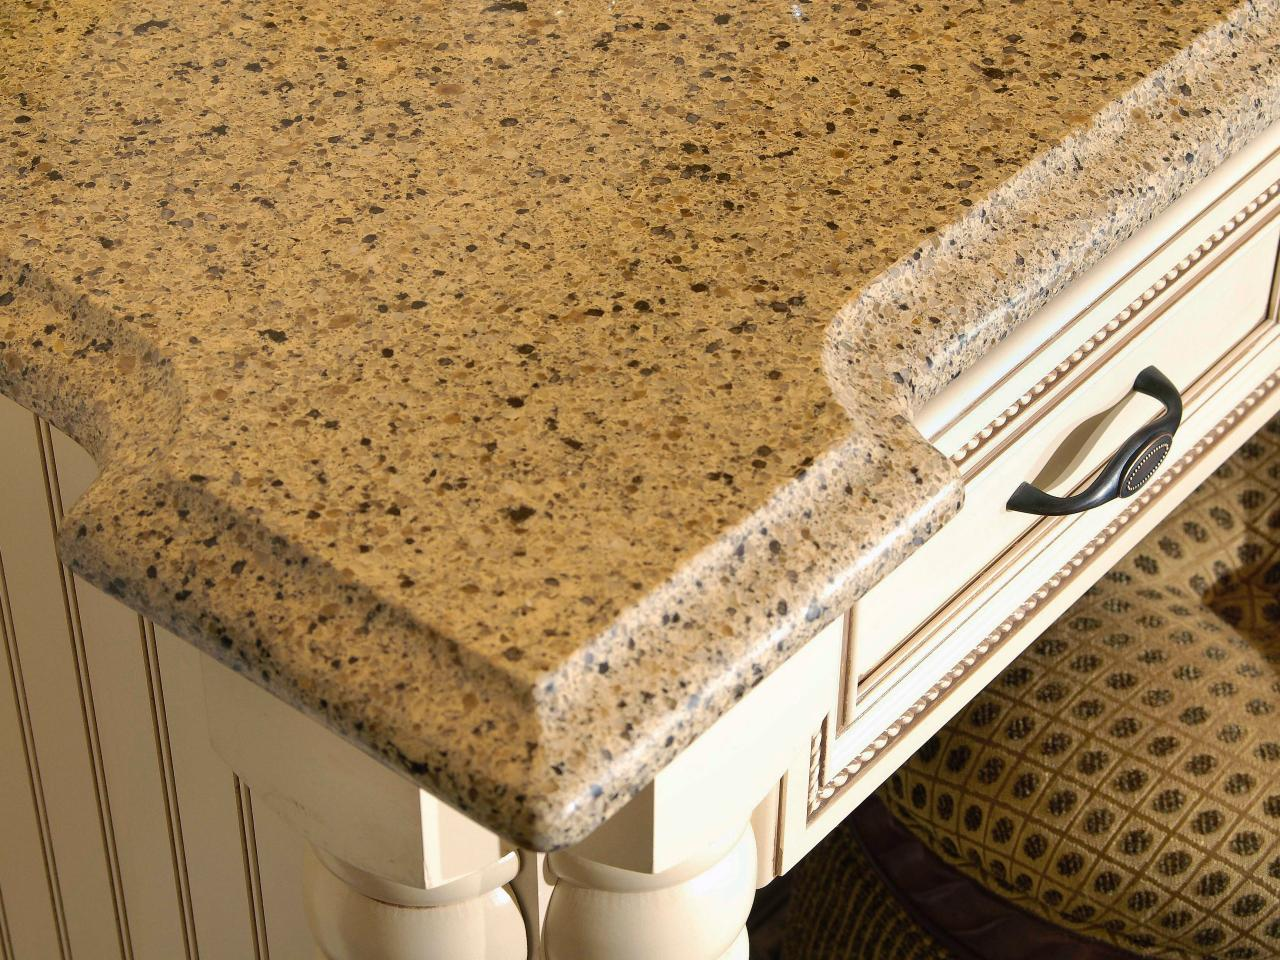 Granite countertops most popular favorite - Benefits Of Granite Countertops